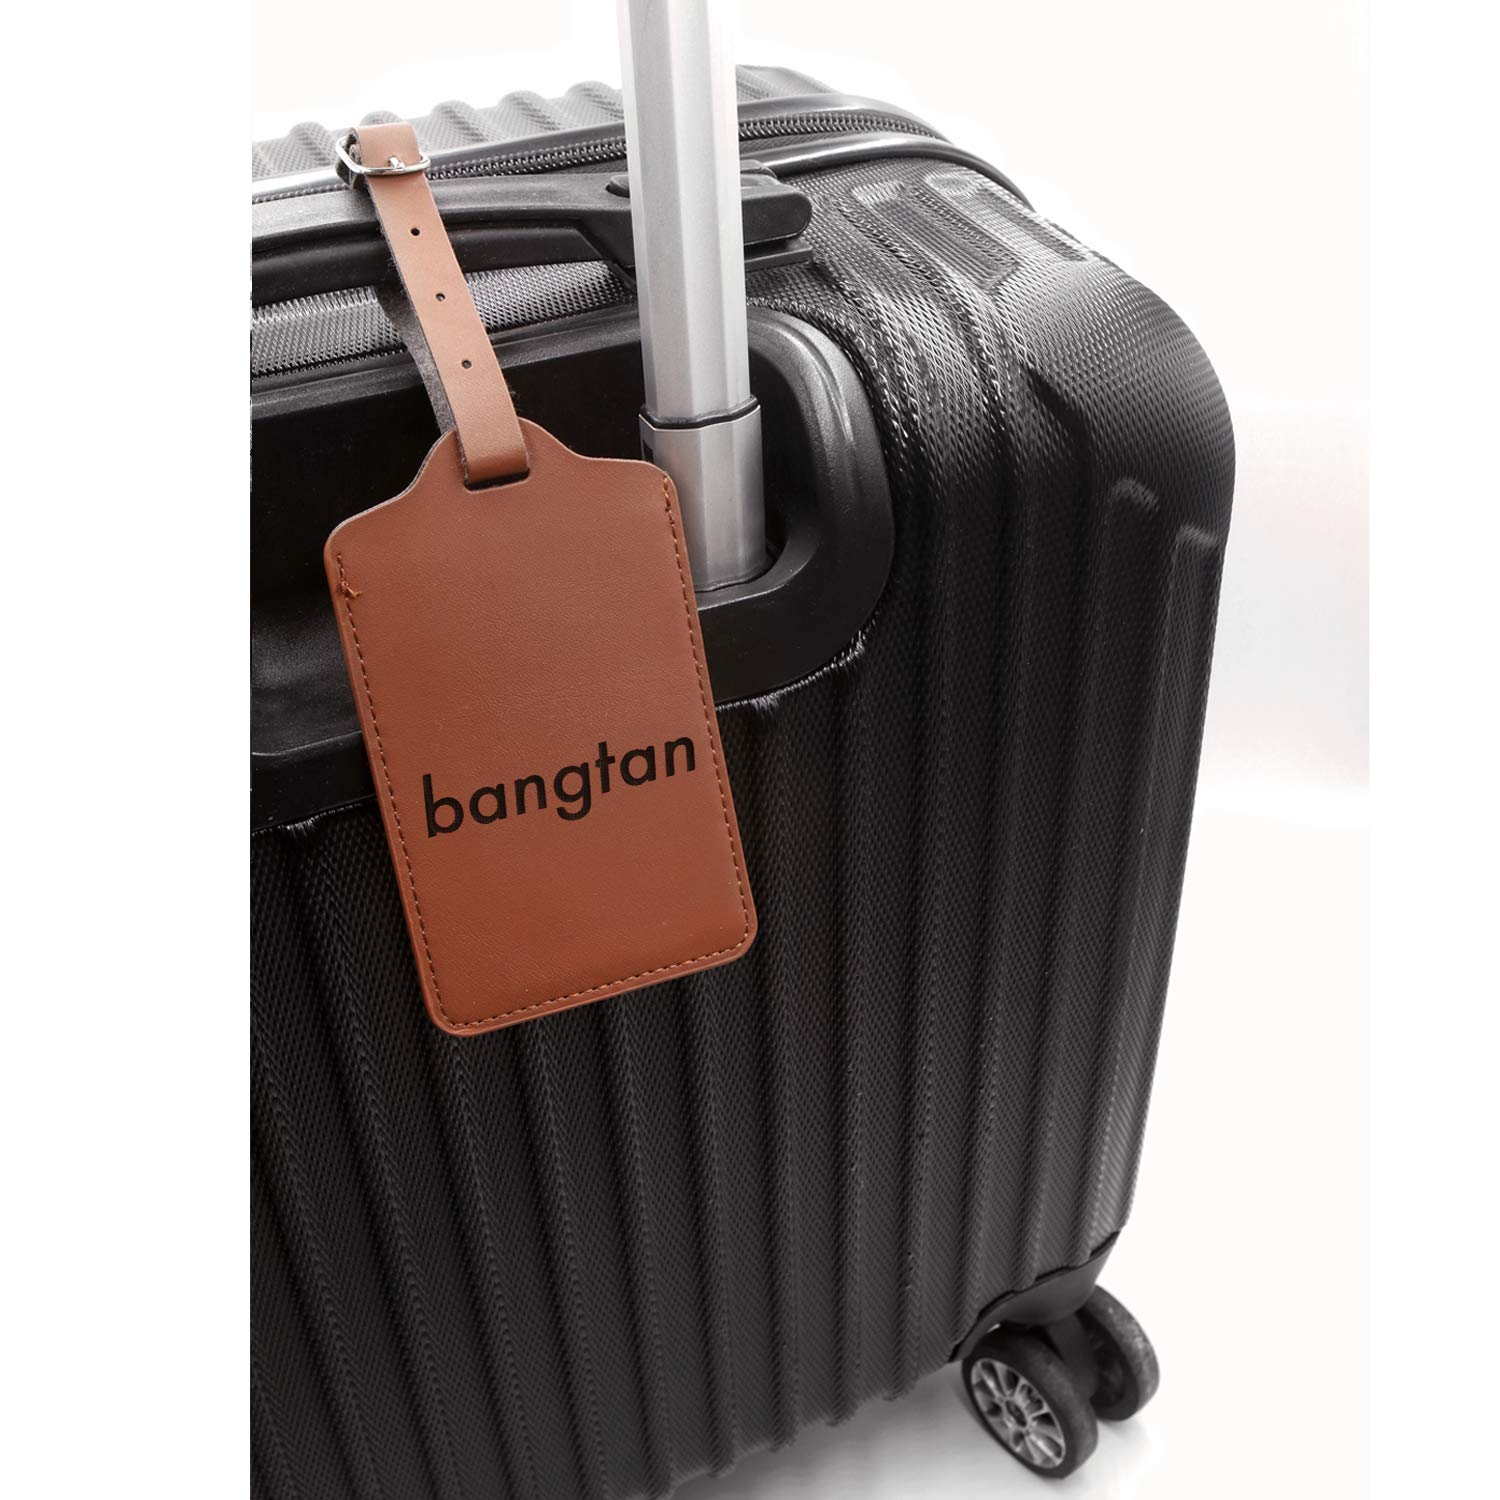 Hallyu Kpop Bts Bangtan Engraved Synthetic Pu Leather Luggage Tag For Any Type Of Luggage Handcrafted By Mastercraftsmen London Tan - Set Of 2 - United States Standard